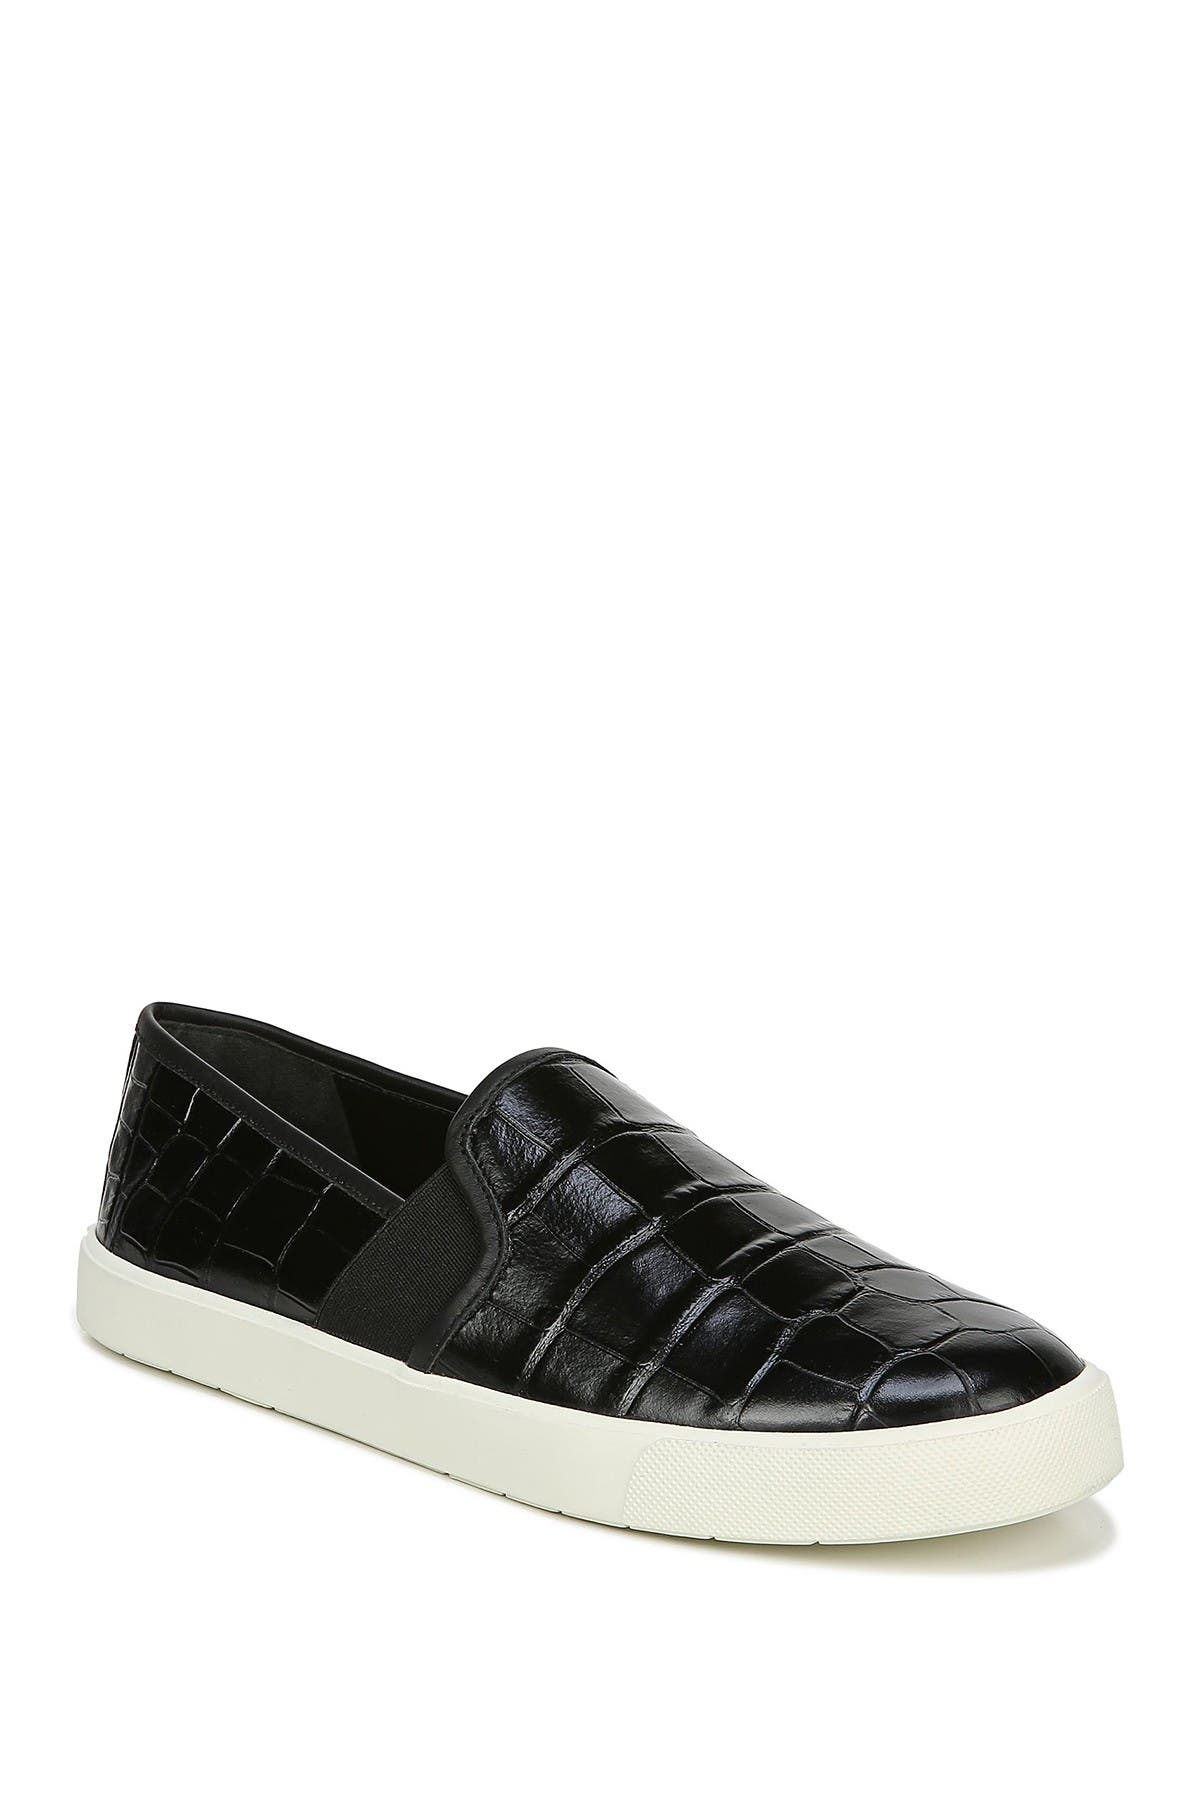 Image of Vince Preston Croc Embossed Leather Slip-On Sneaker